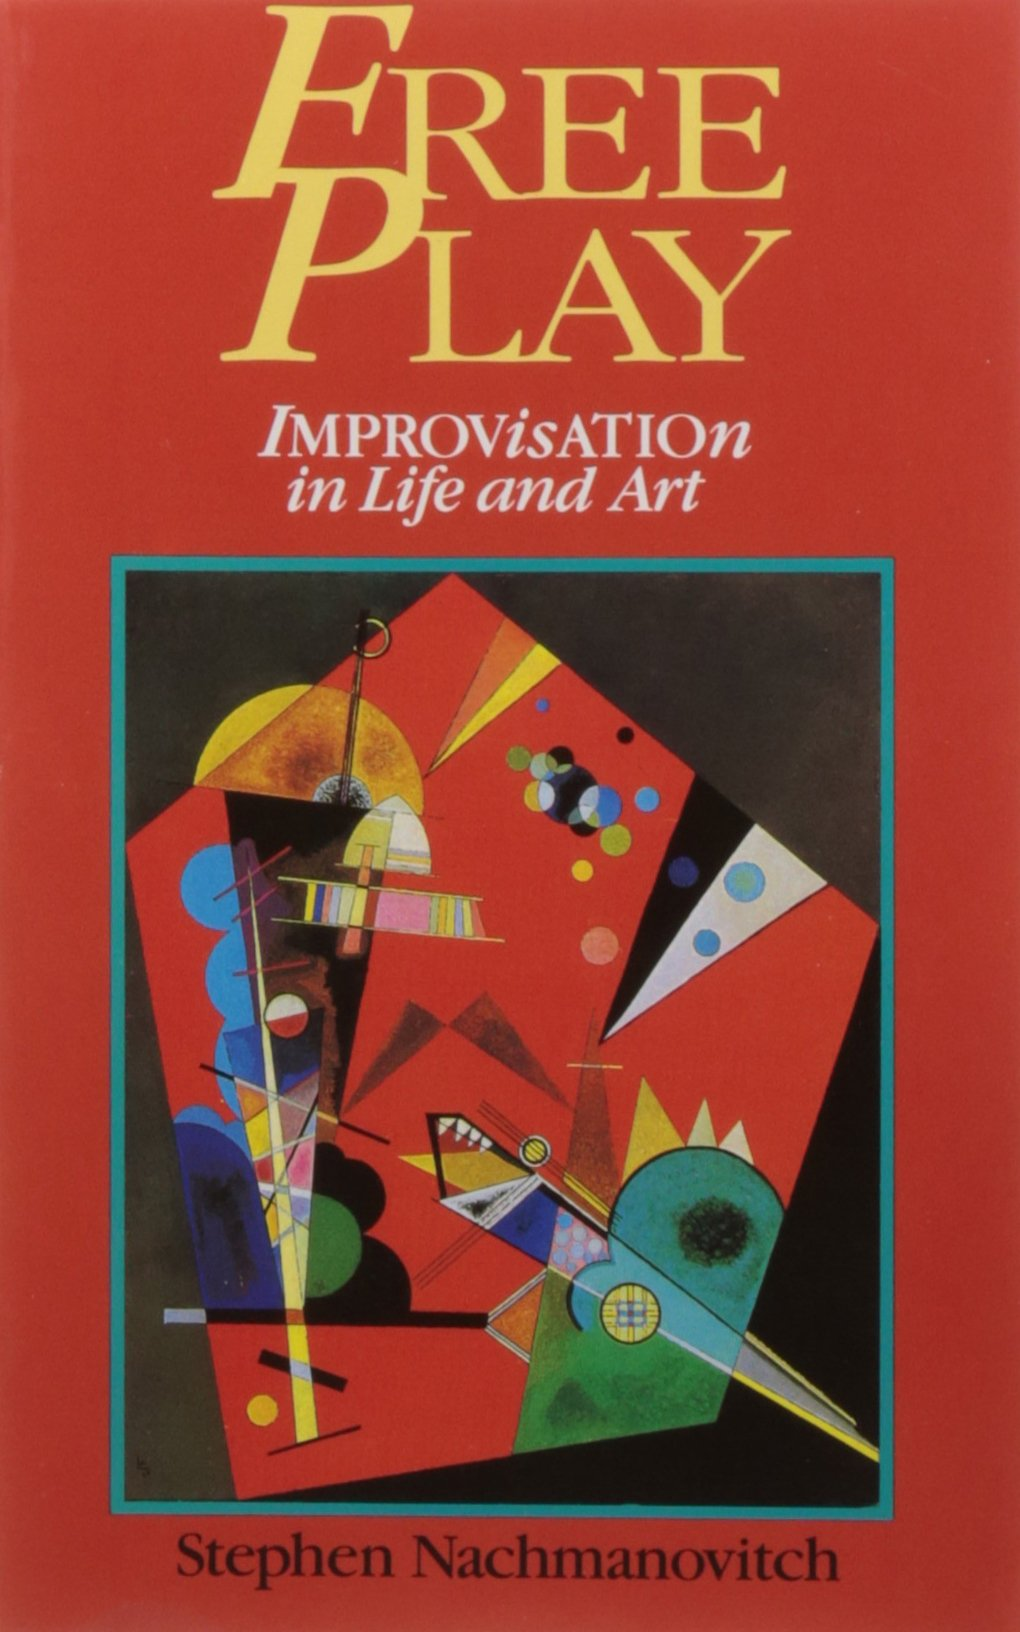 free-play-improvisation-in-life-and-art